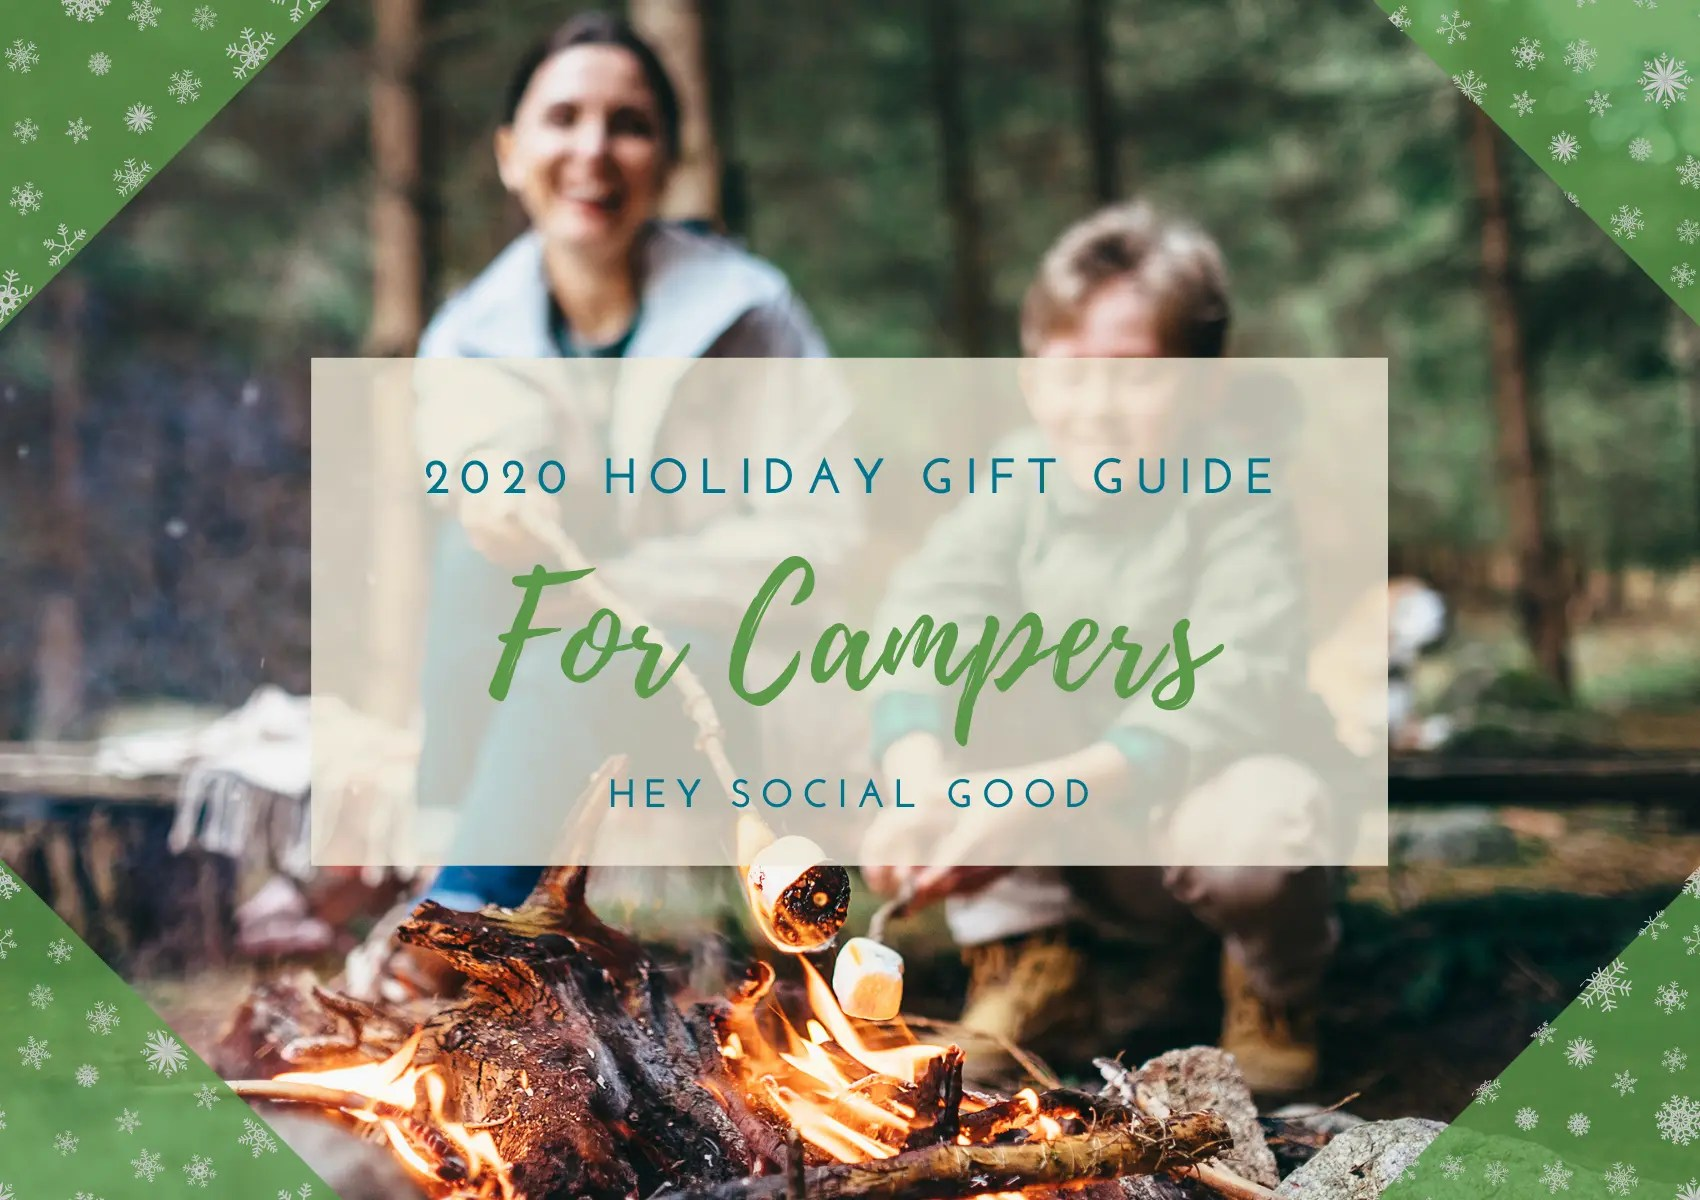 Sustainable and Ethical Holiday Gift Guide for Campers